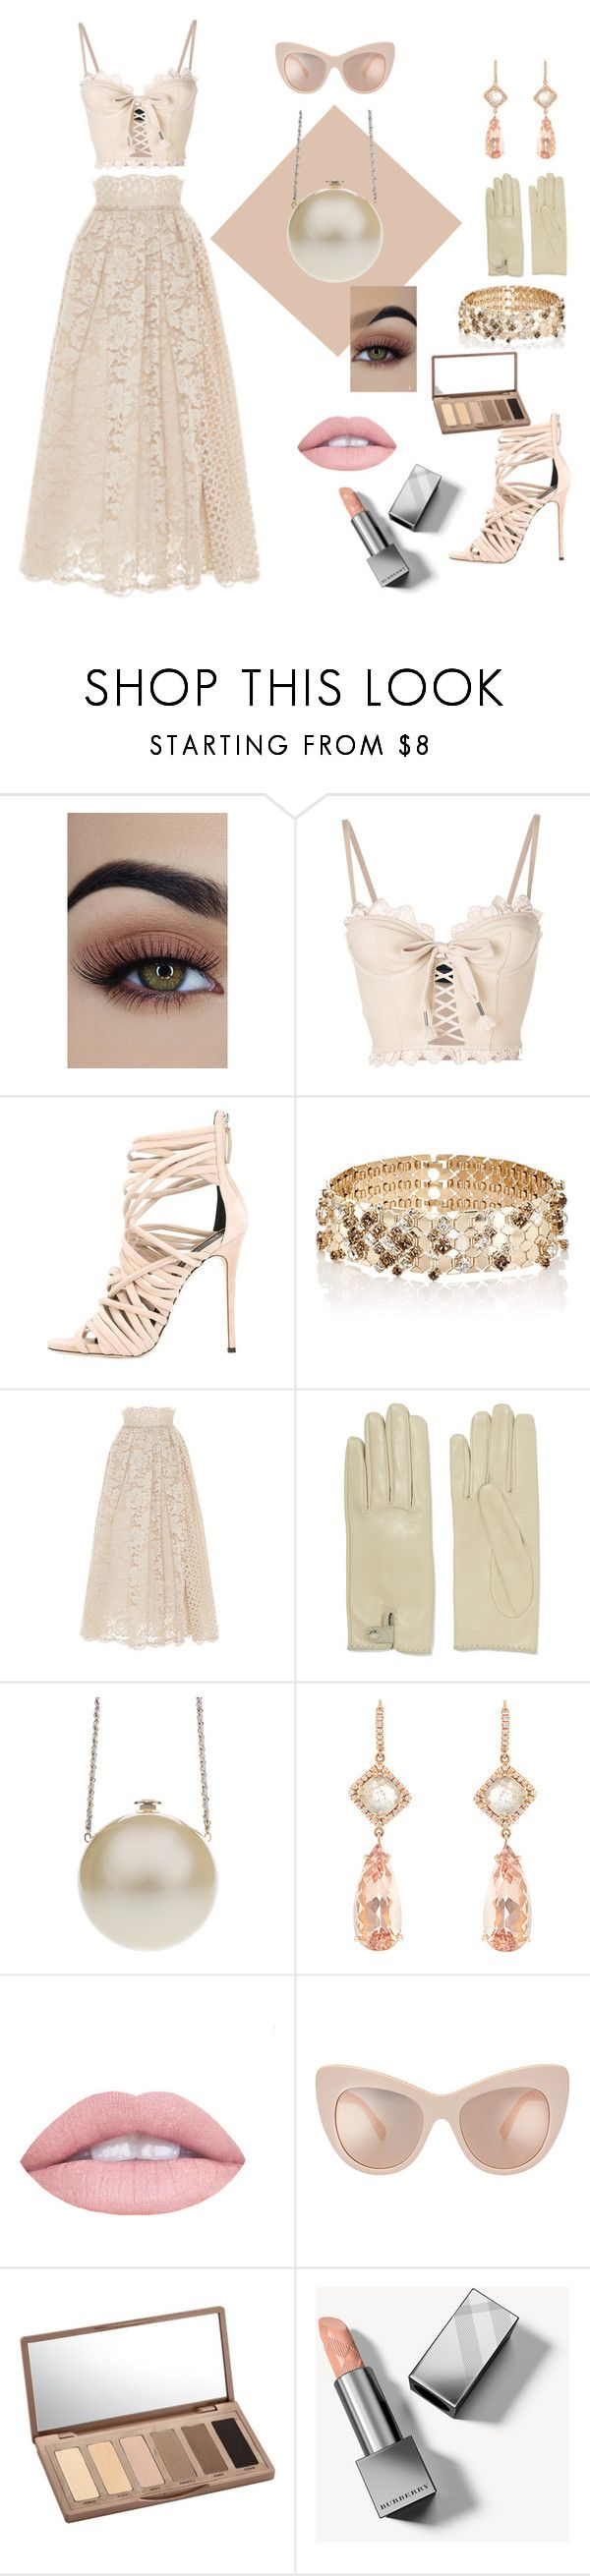 """""""Late afternoon Wedding date"""" by stylemyride ❤ liked on Polyvore featuring Puma, Giuseppe Zanotti, Lanvin, LUISA BECCARIA, Causse, Chanel, NSR Nina Runsdorf, L.A. Girl, Urban Decay and Burberry"""